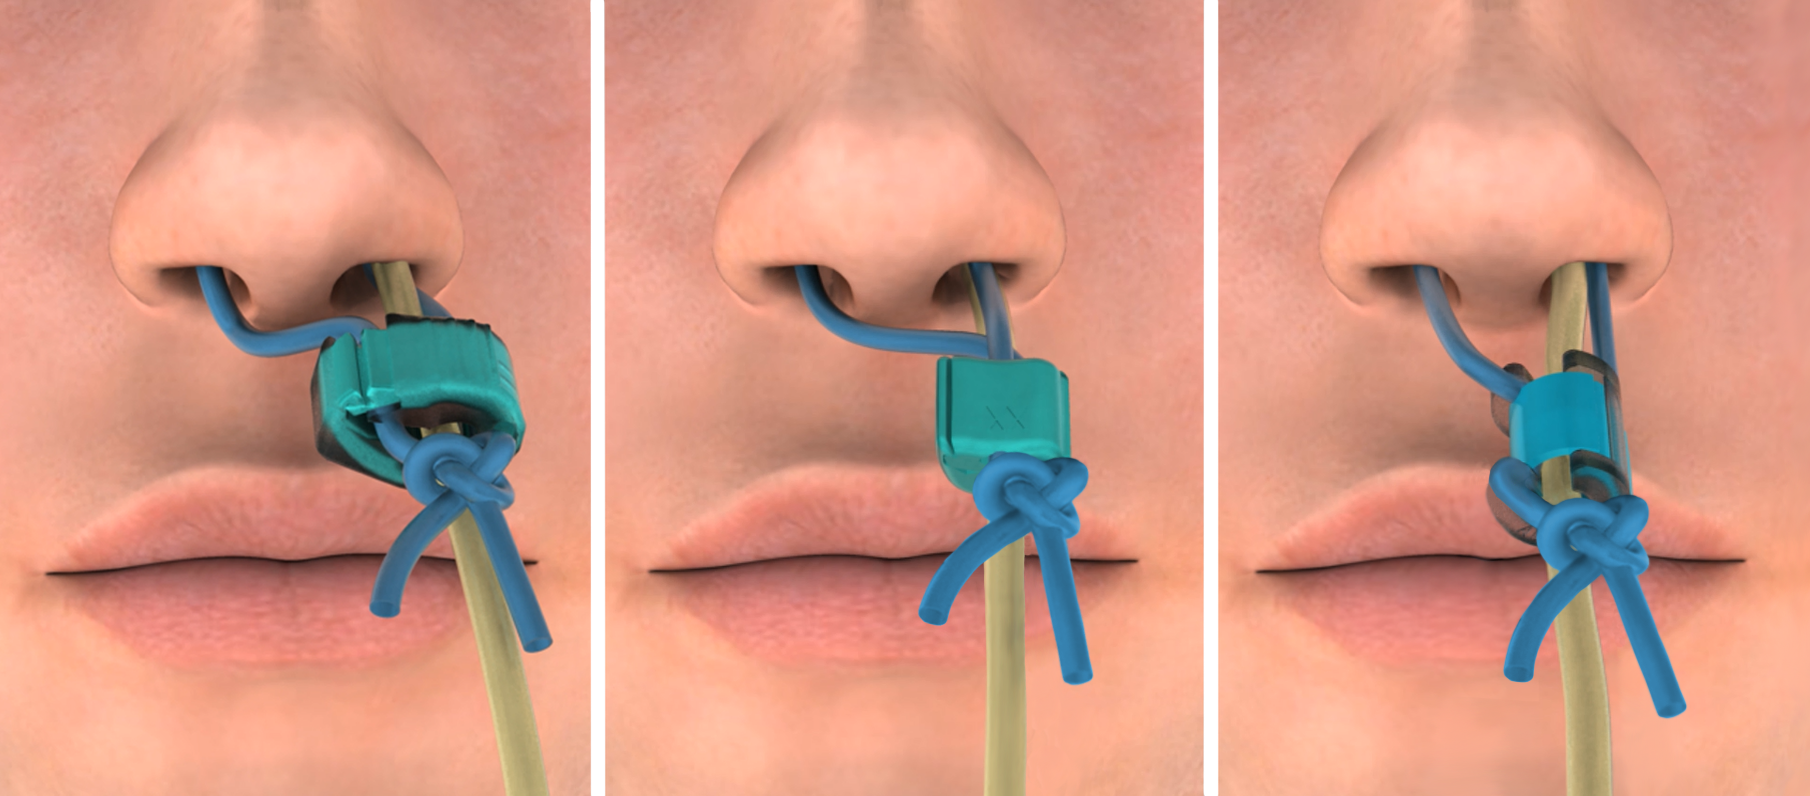 Adult Clips Tube amt bridle™ family | nasal tube retaining systems, nasal bridle